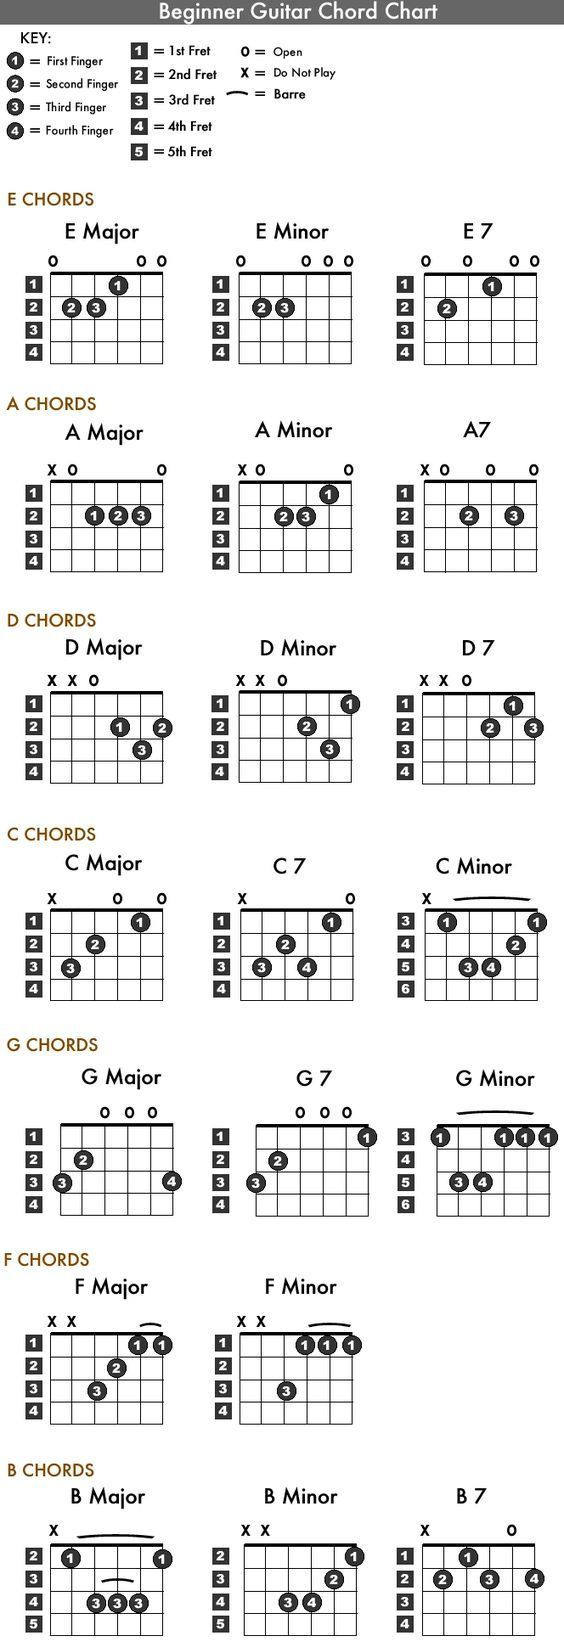 21 Best Para La Escuela Images On Pinterest Guitar Chords Guitar